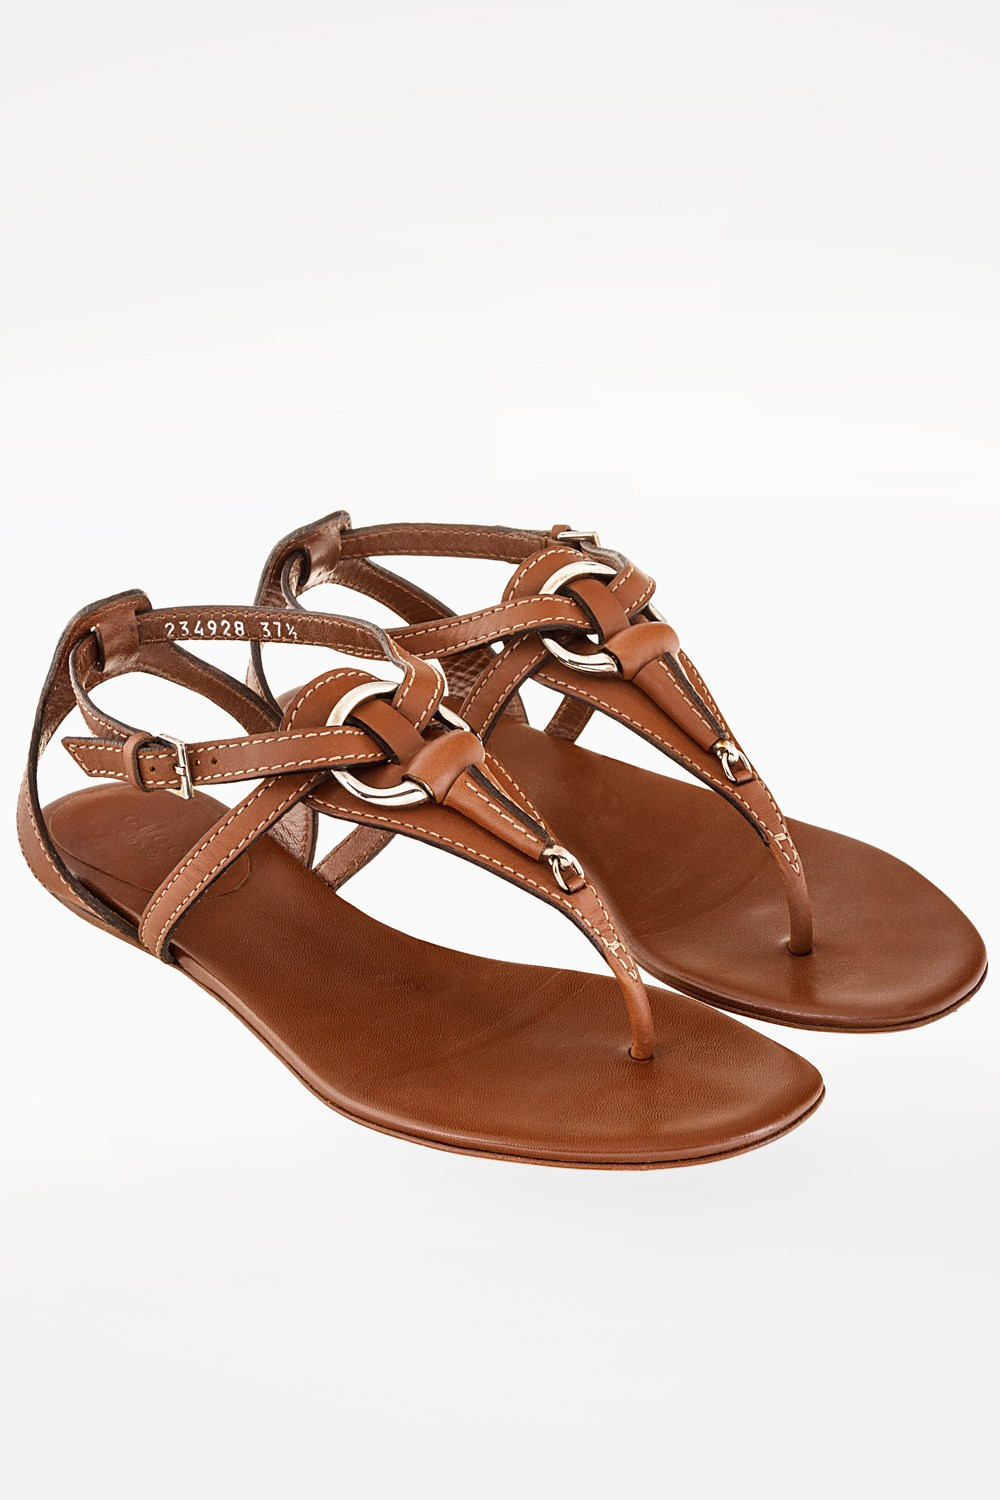 Tan Leather Strappy Sandals / Size: 37